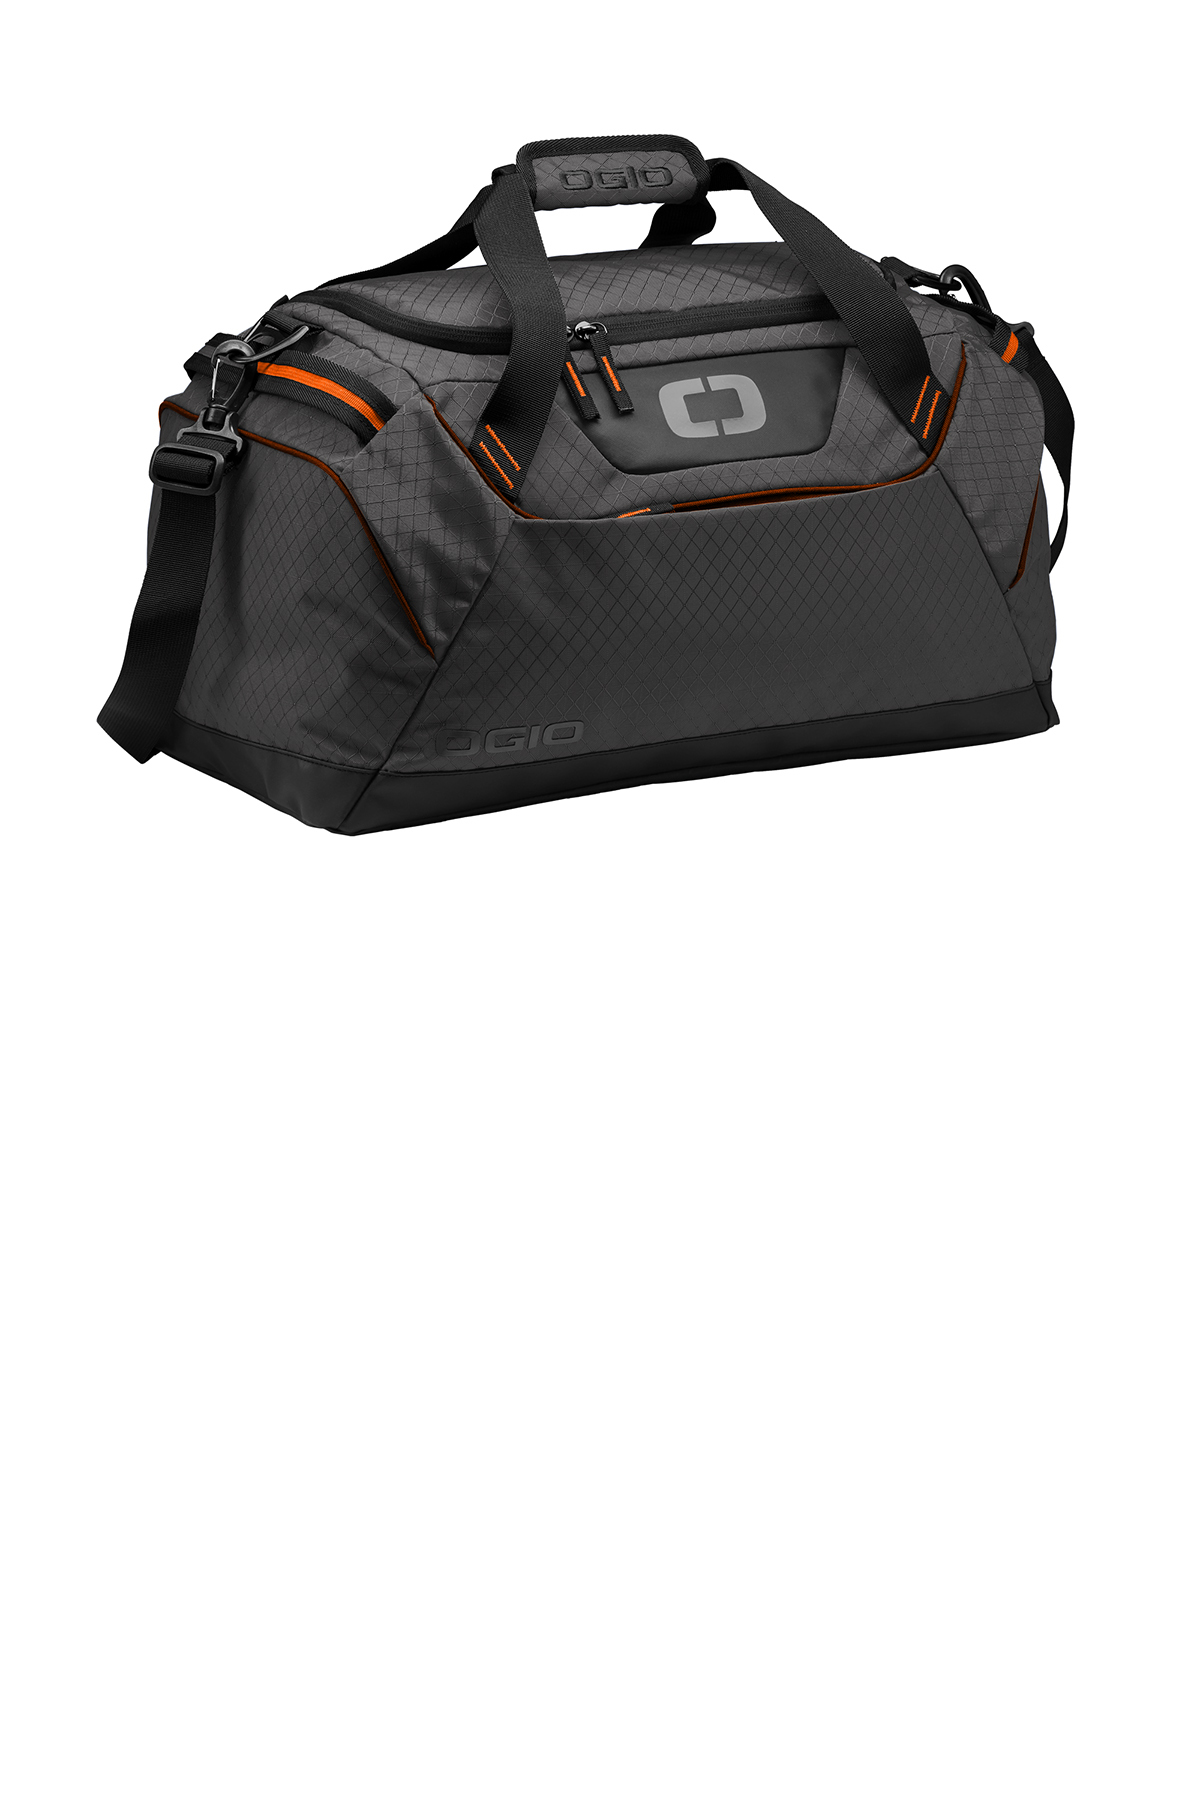 OGIO 95001 - Catalyst Duffel